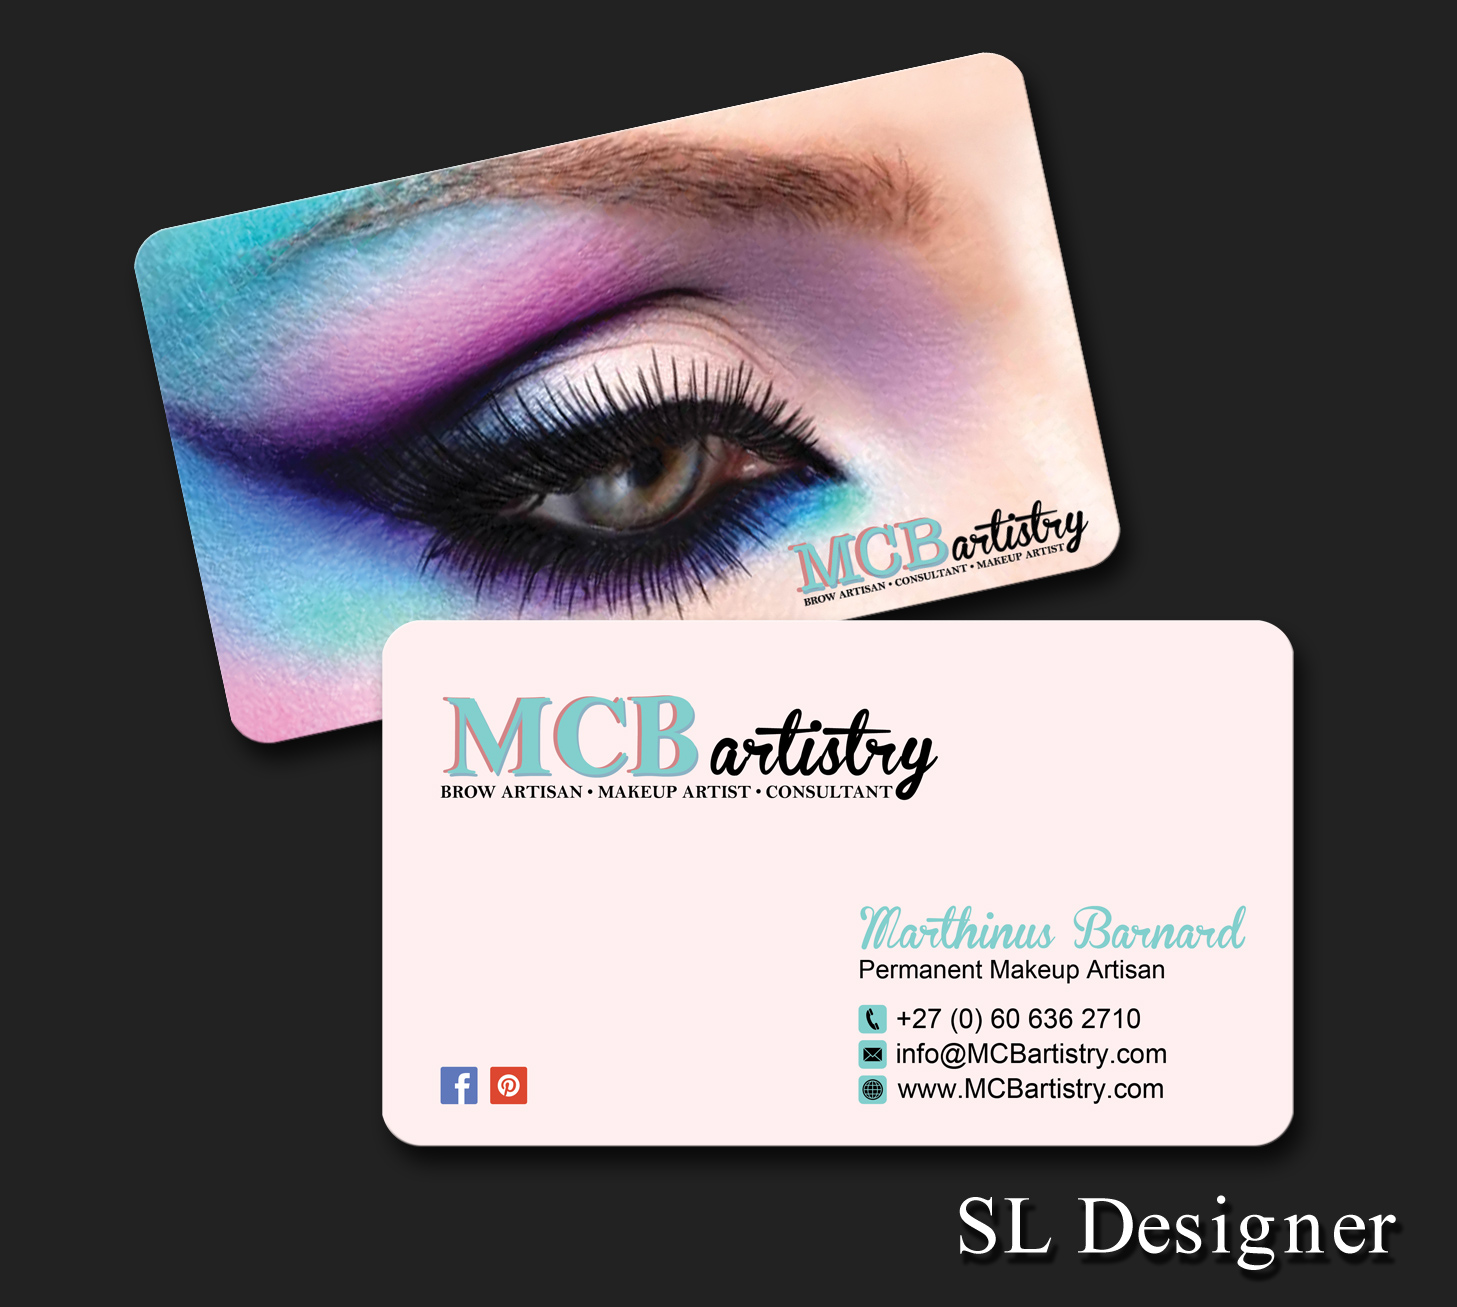 Modern professional industry business card design for mcbartistry business card design by sl designer for mcbartistry design 12623951 reheart Choice Image